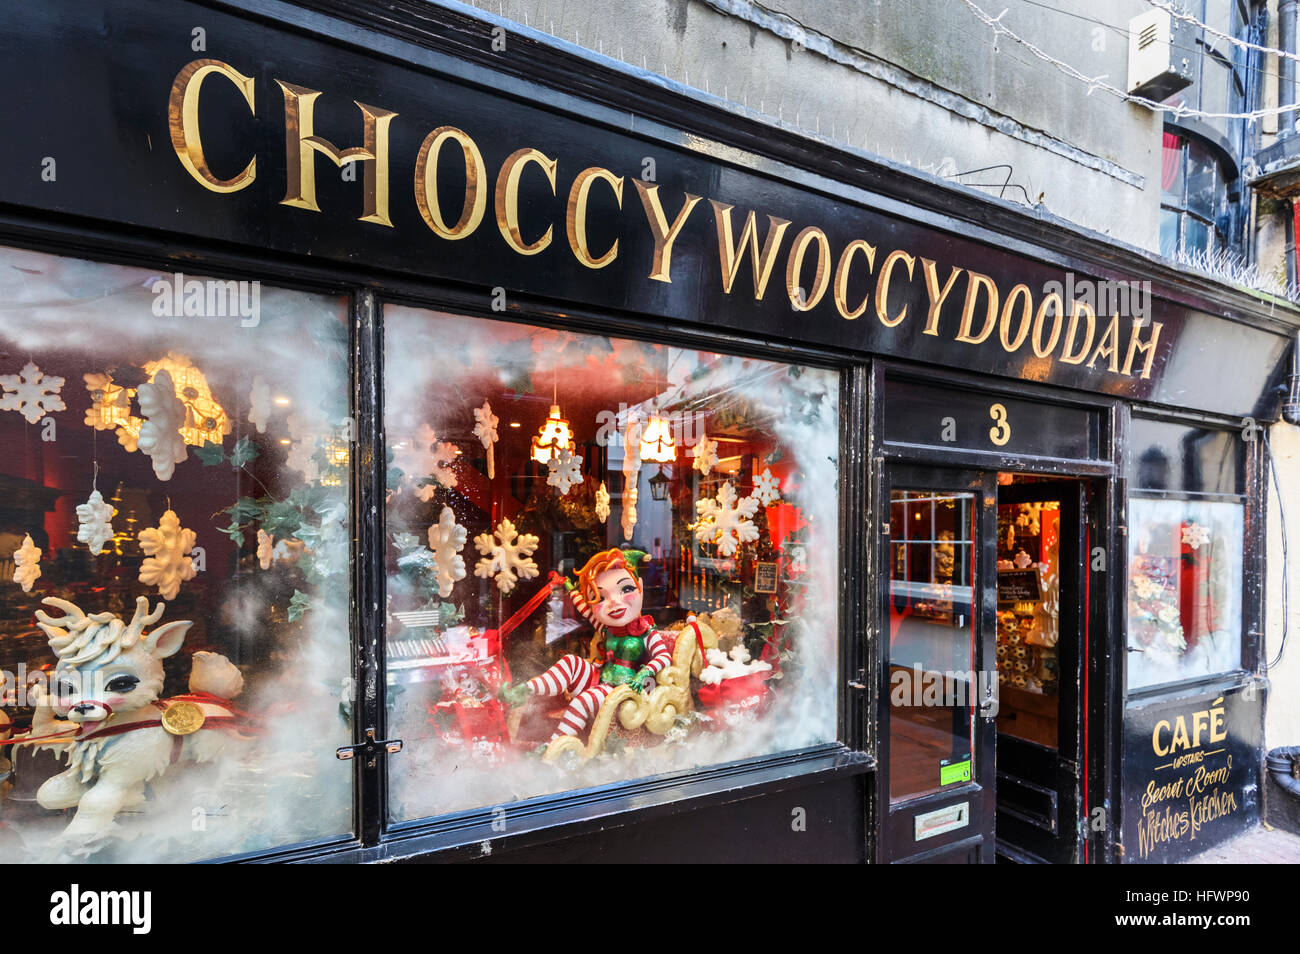 Choccywoccydoodah Shop Front And Windows In The Lanes